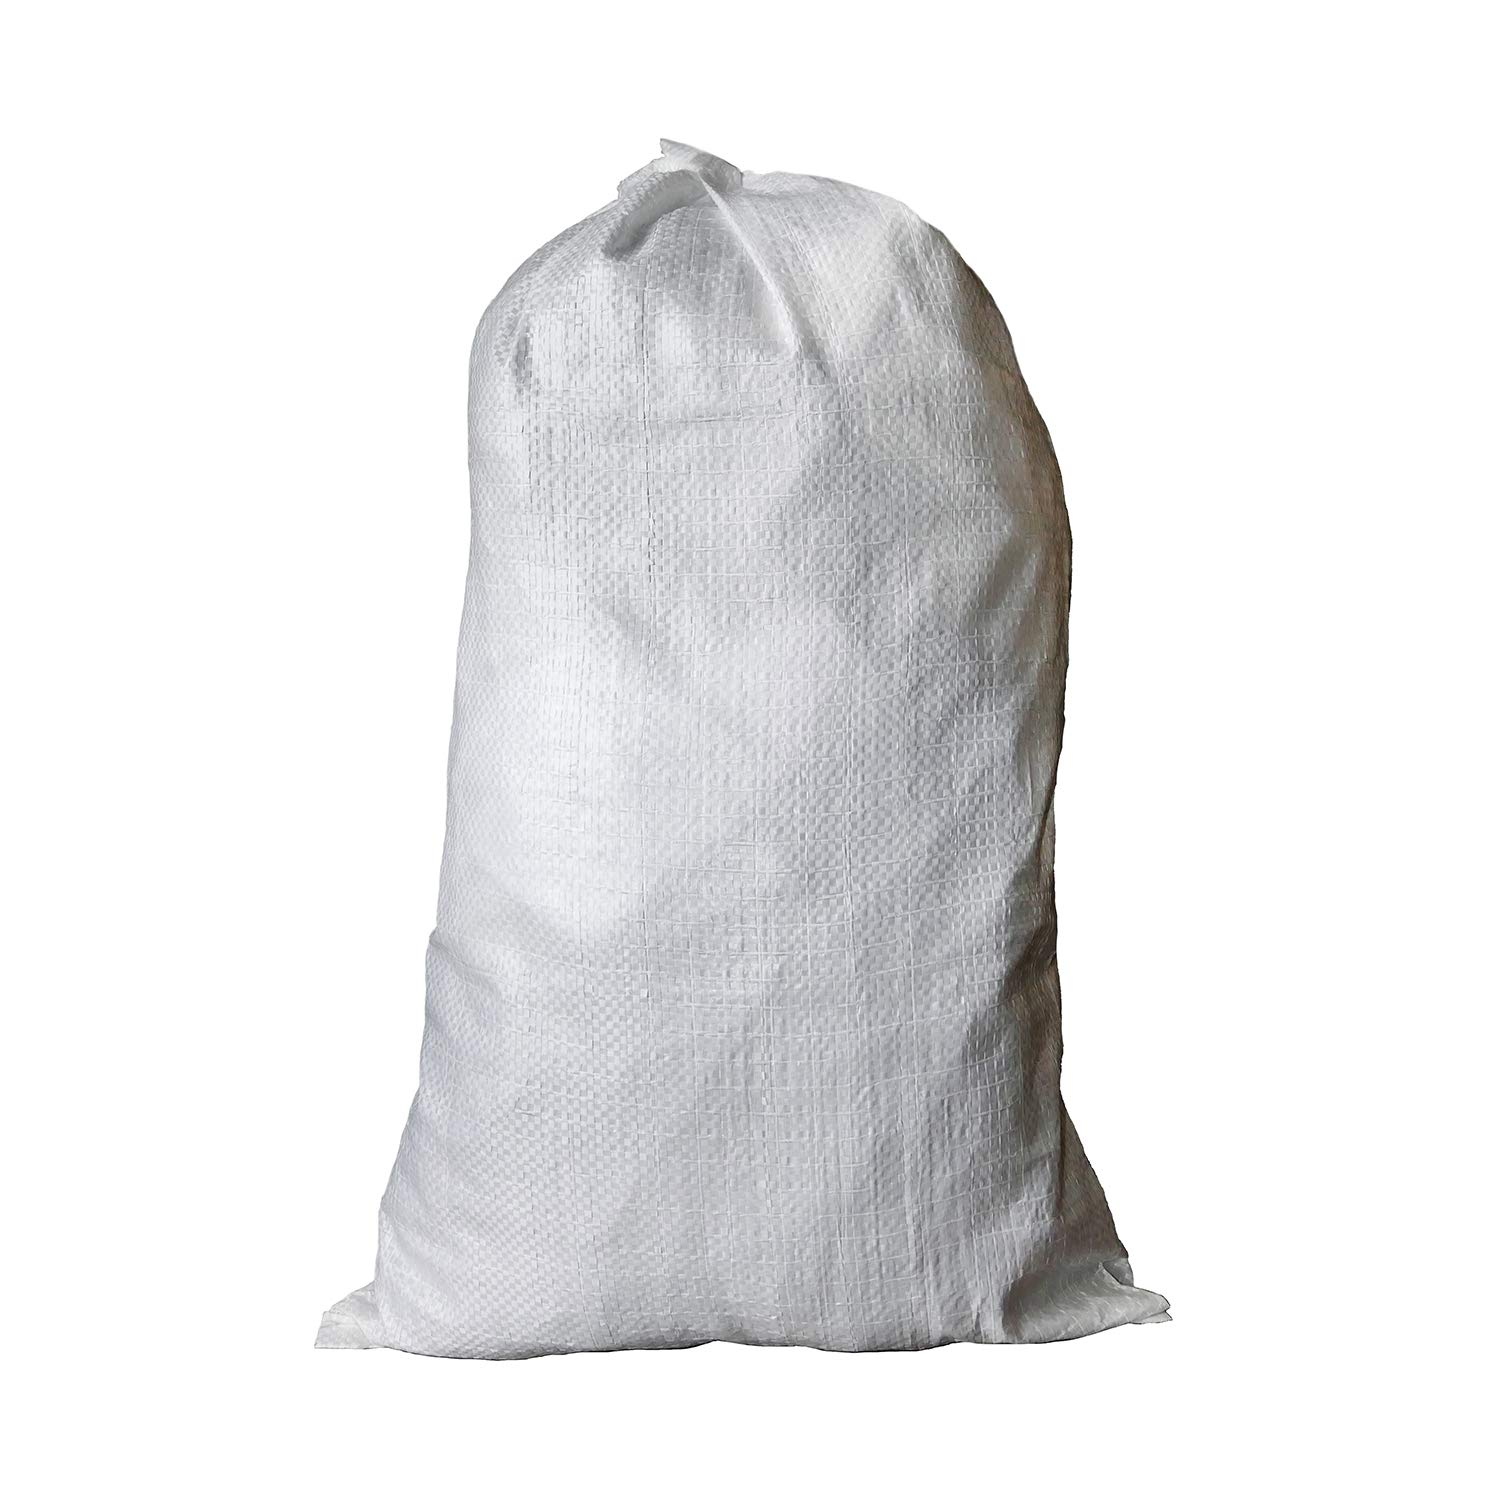 BISupply | Polypropylene Sandbags - 500 Pack Empty Sand Bags for Flood Control + Canopy Tent Weights, 14'' x 26'' Inch